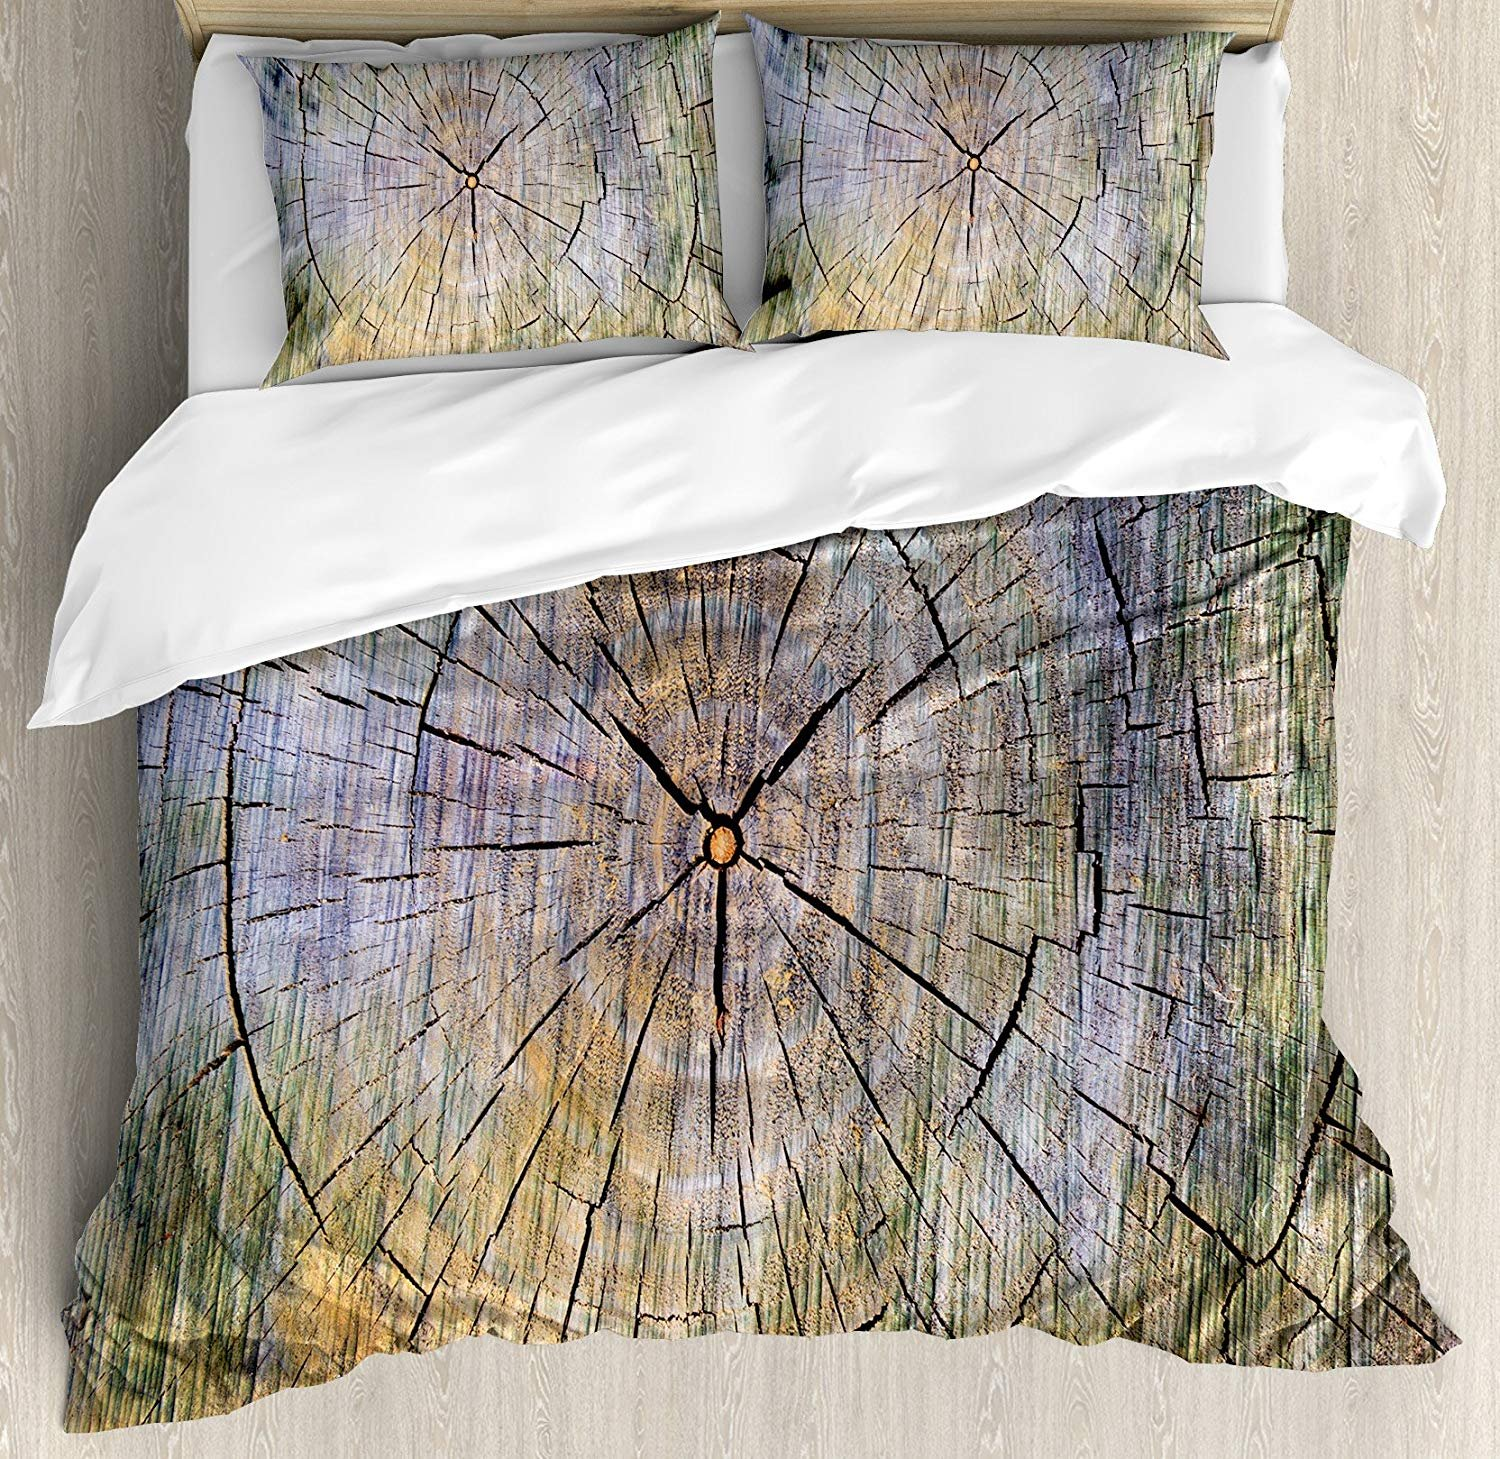 Duvet Cover Set Rustic Annual Rings of Wood Growth Aging Theme Dirty Inner Tree Body Branch Whorls Width Design Ultra Soft Durable Twill Plush 4 Pcs Bedding Sets for Kids/Teens/Adults Twin Size